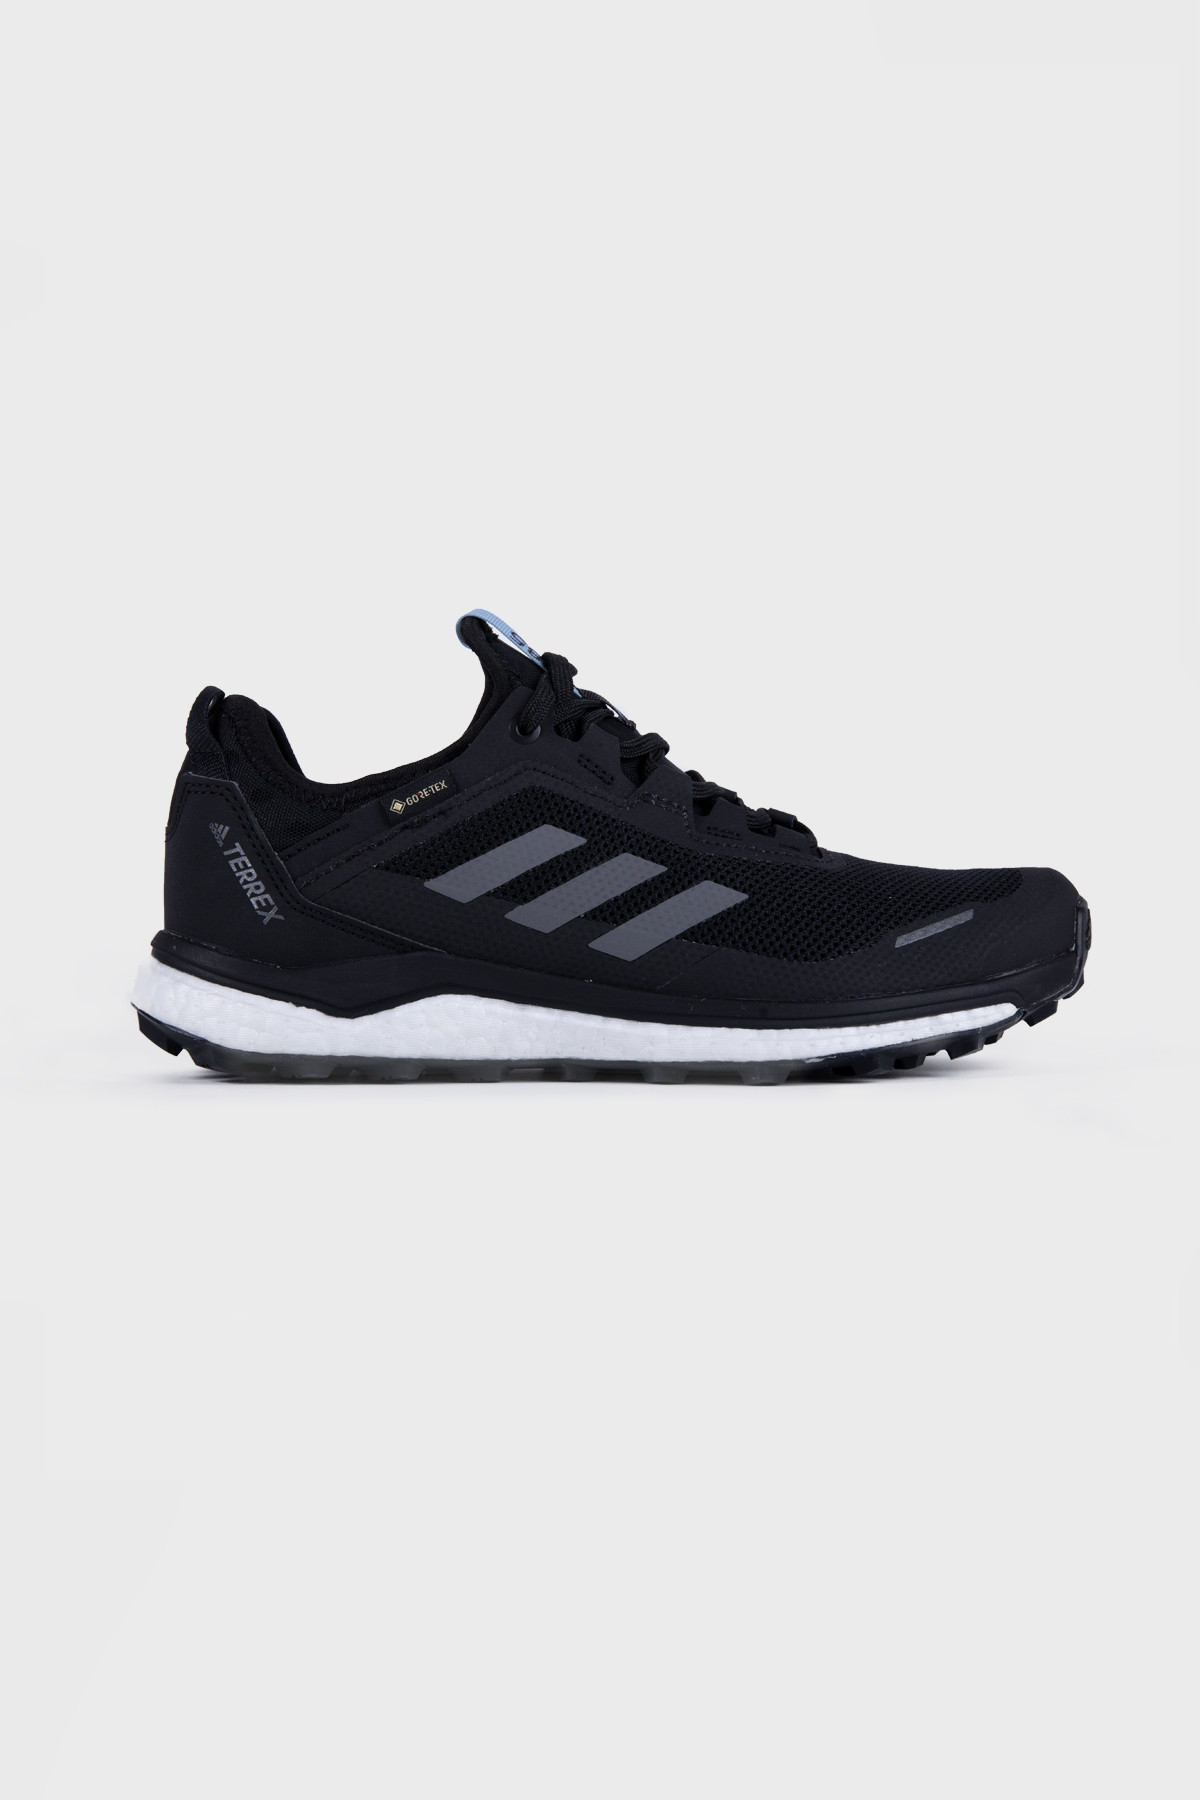 Adidas W - Terrex agravic flow GTX - Core black